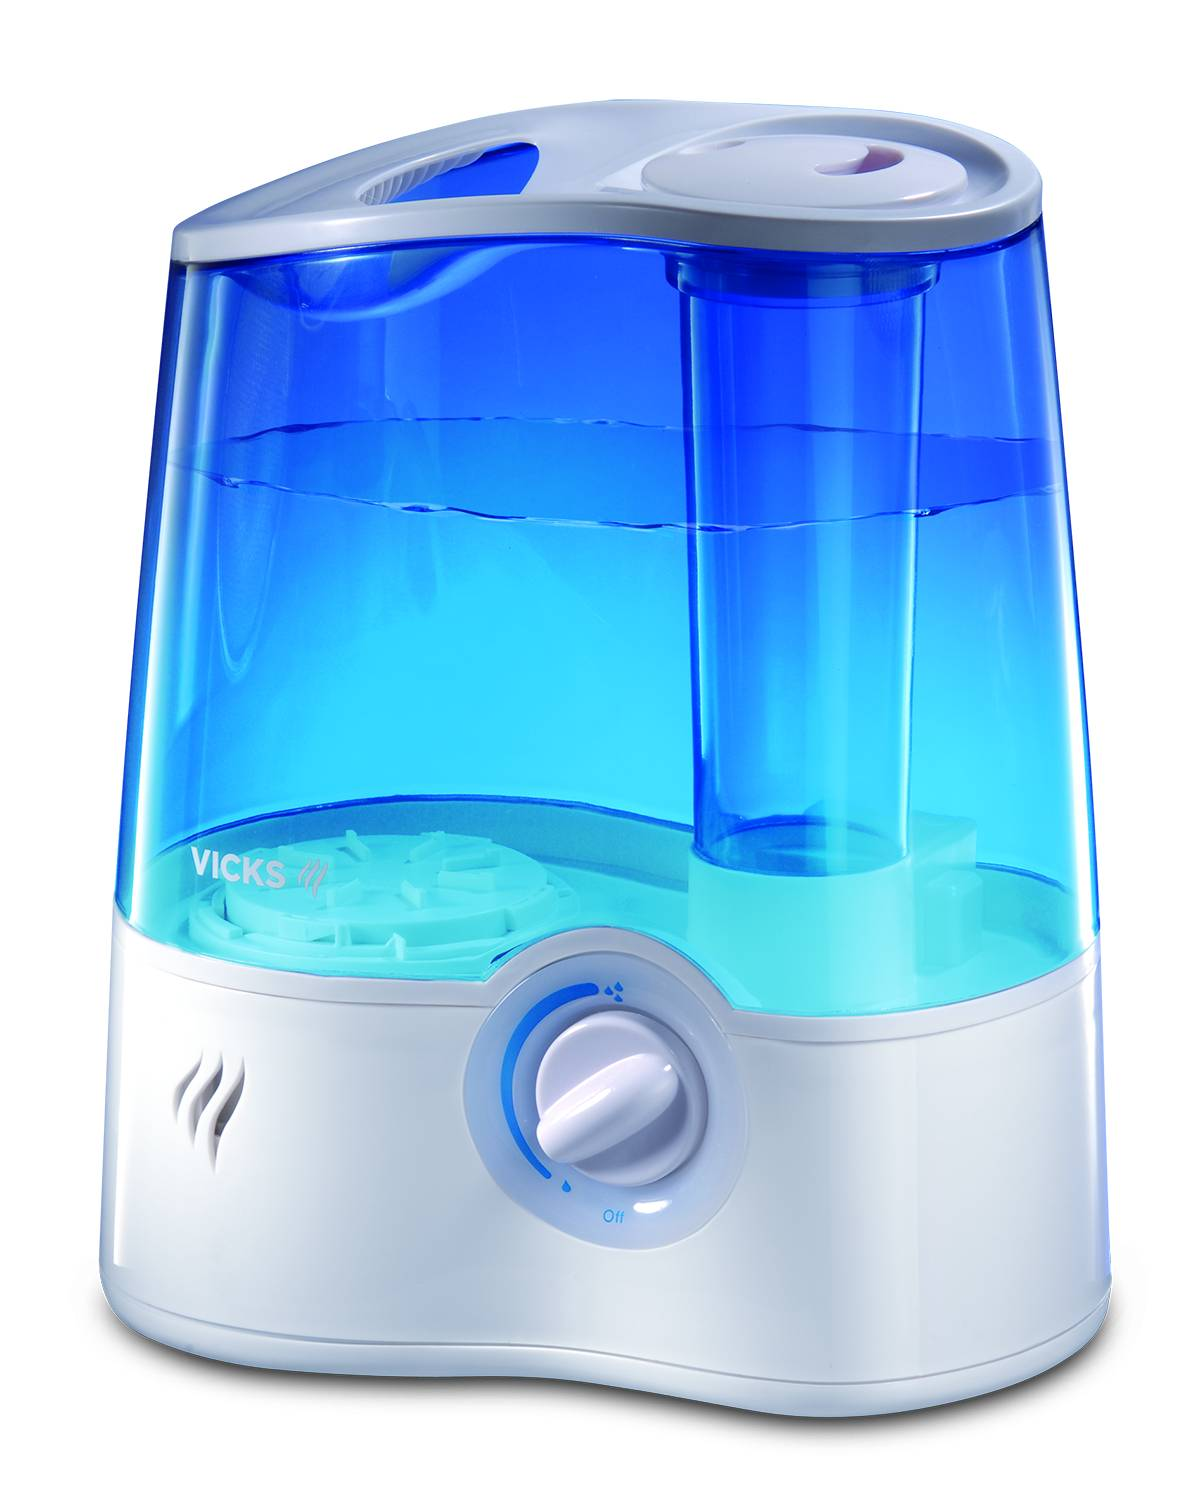 Vicks Mini Filter Free Cool Mist Humidifier Green Walmart.com #069CC5